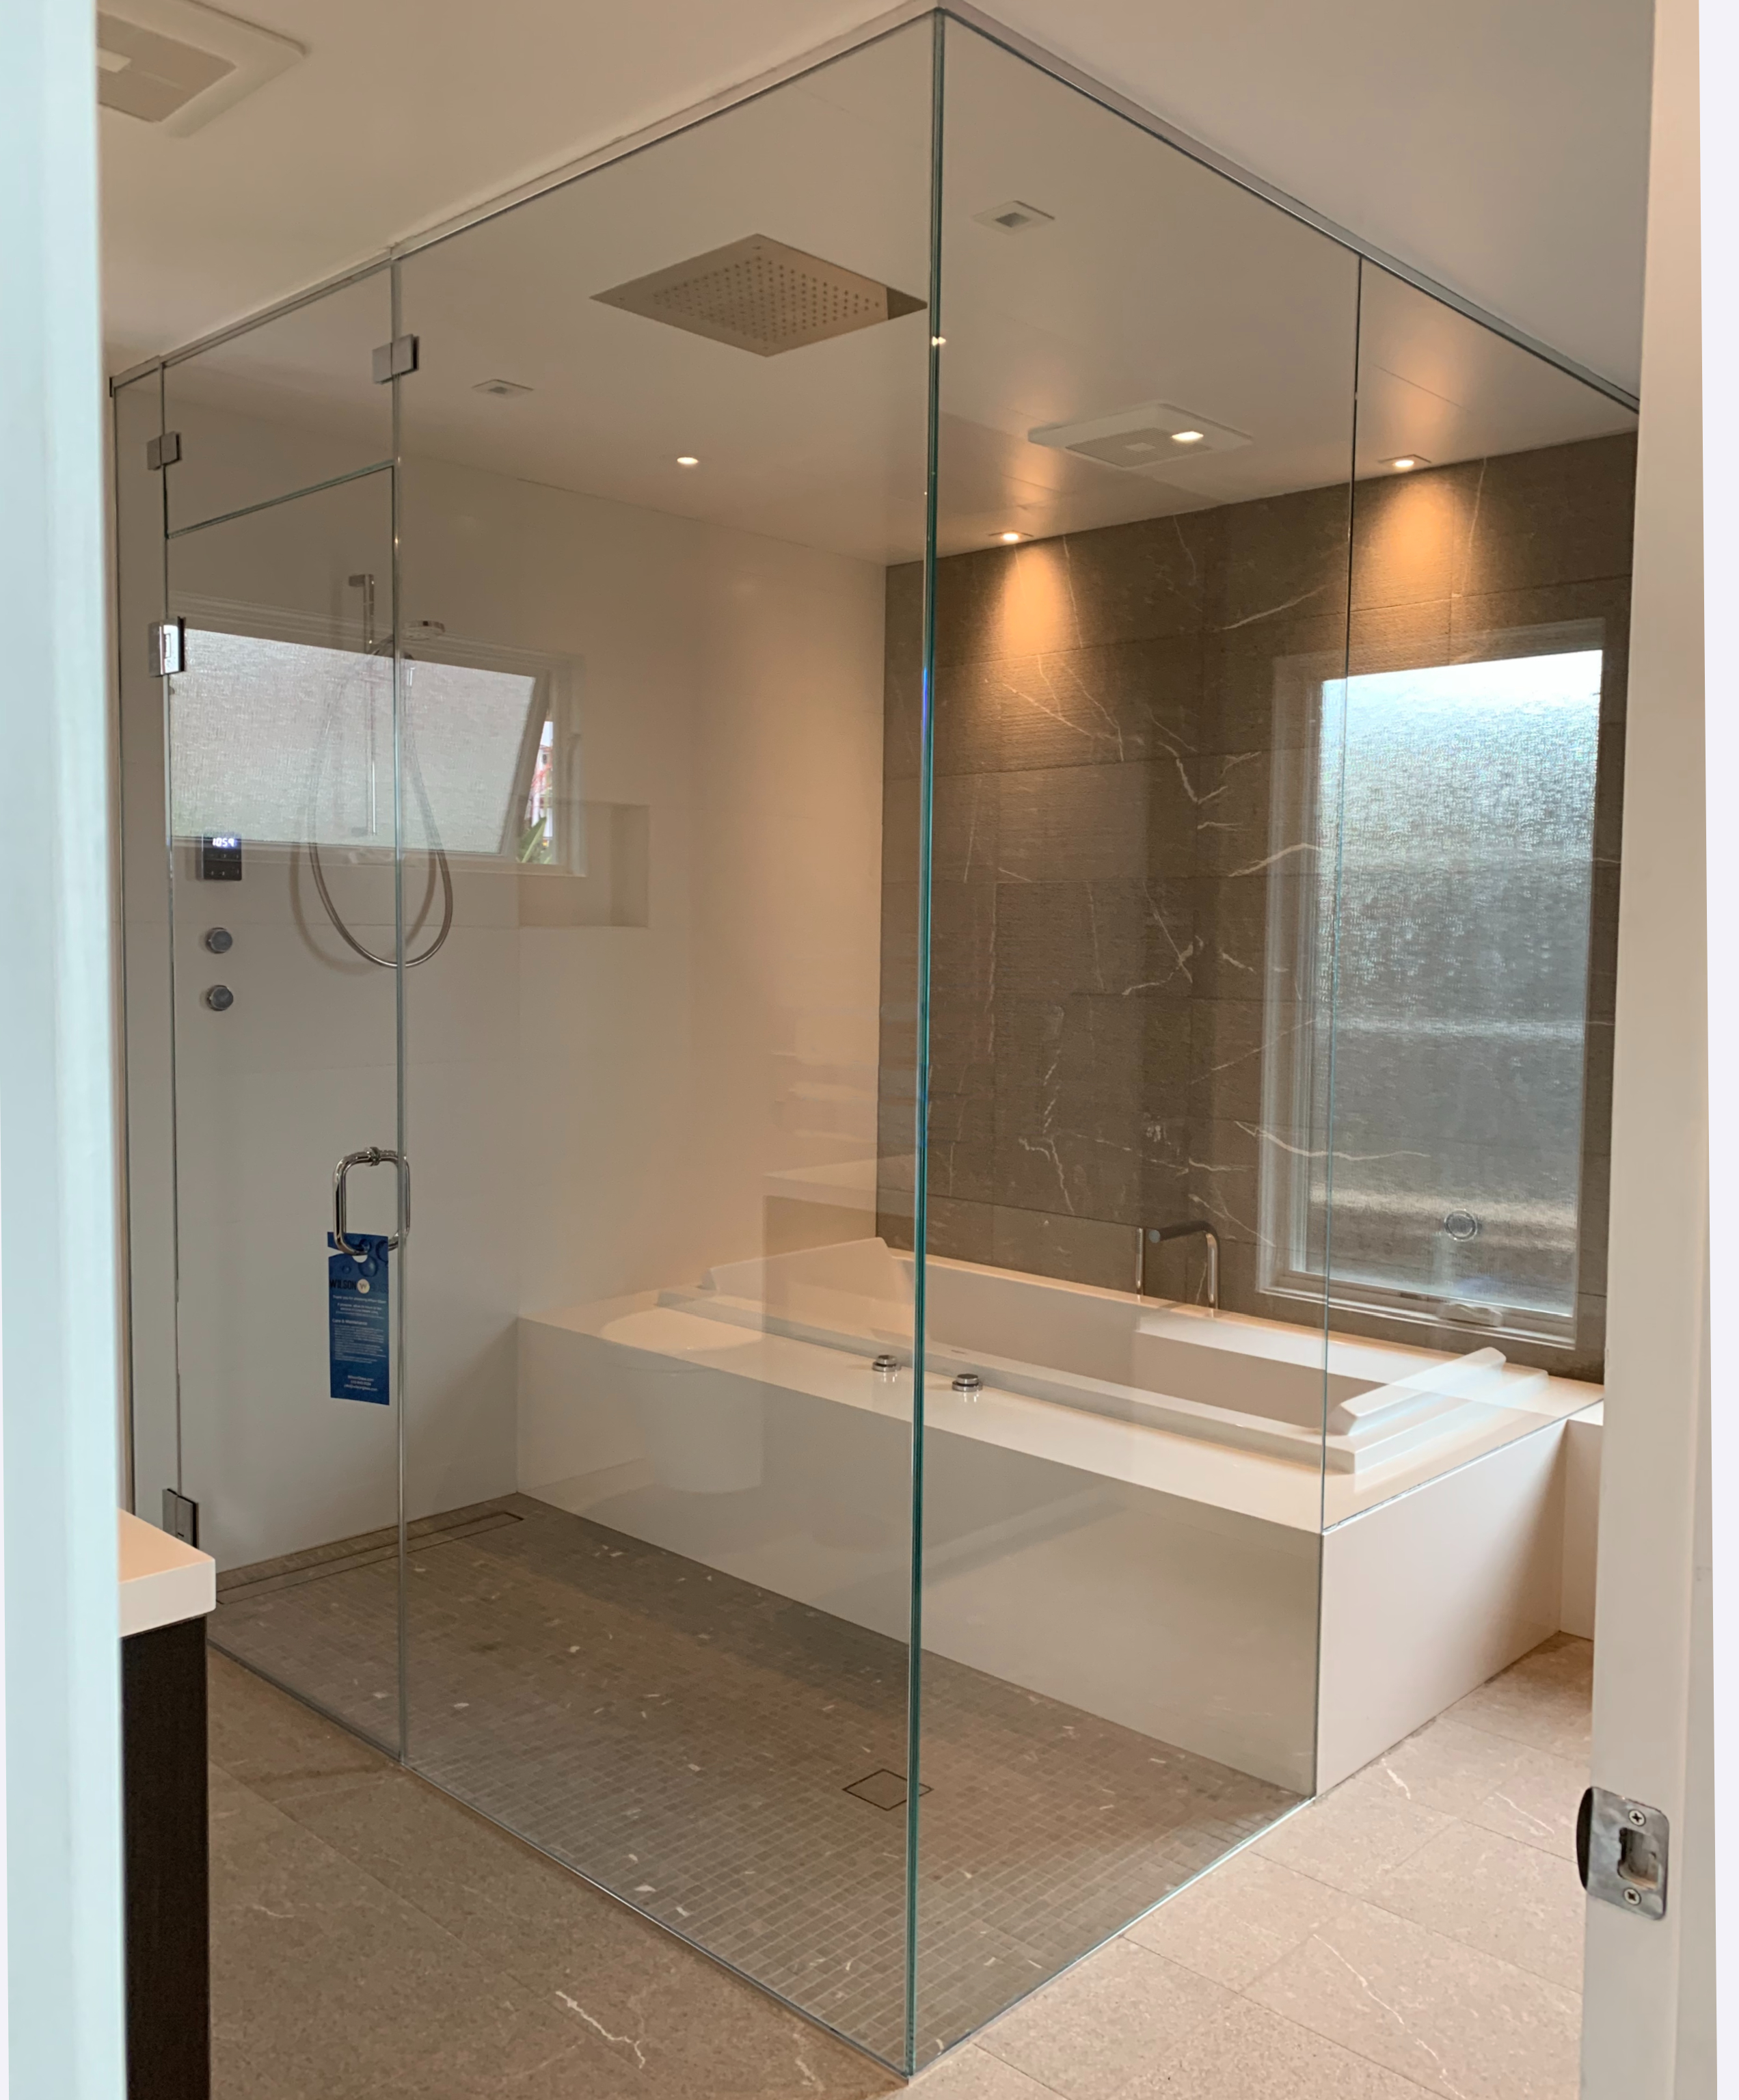 Steam Room with Operable Transom